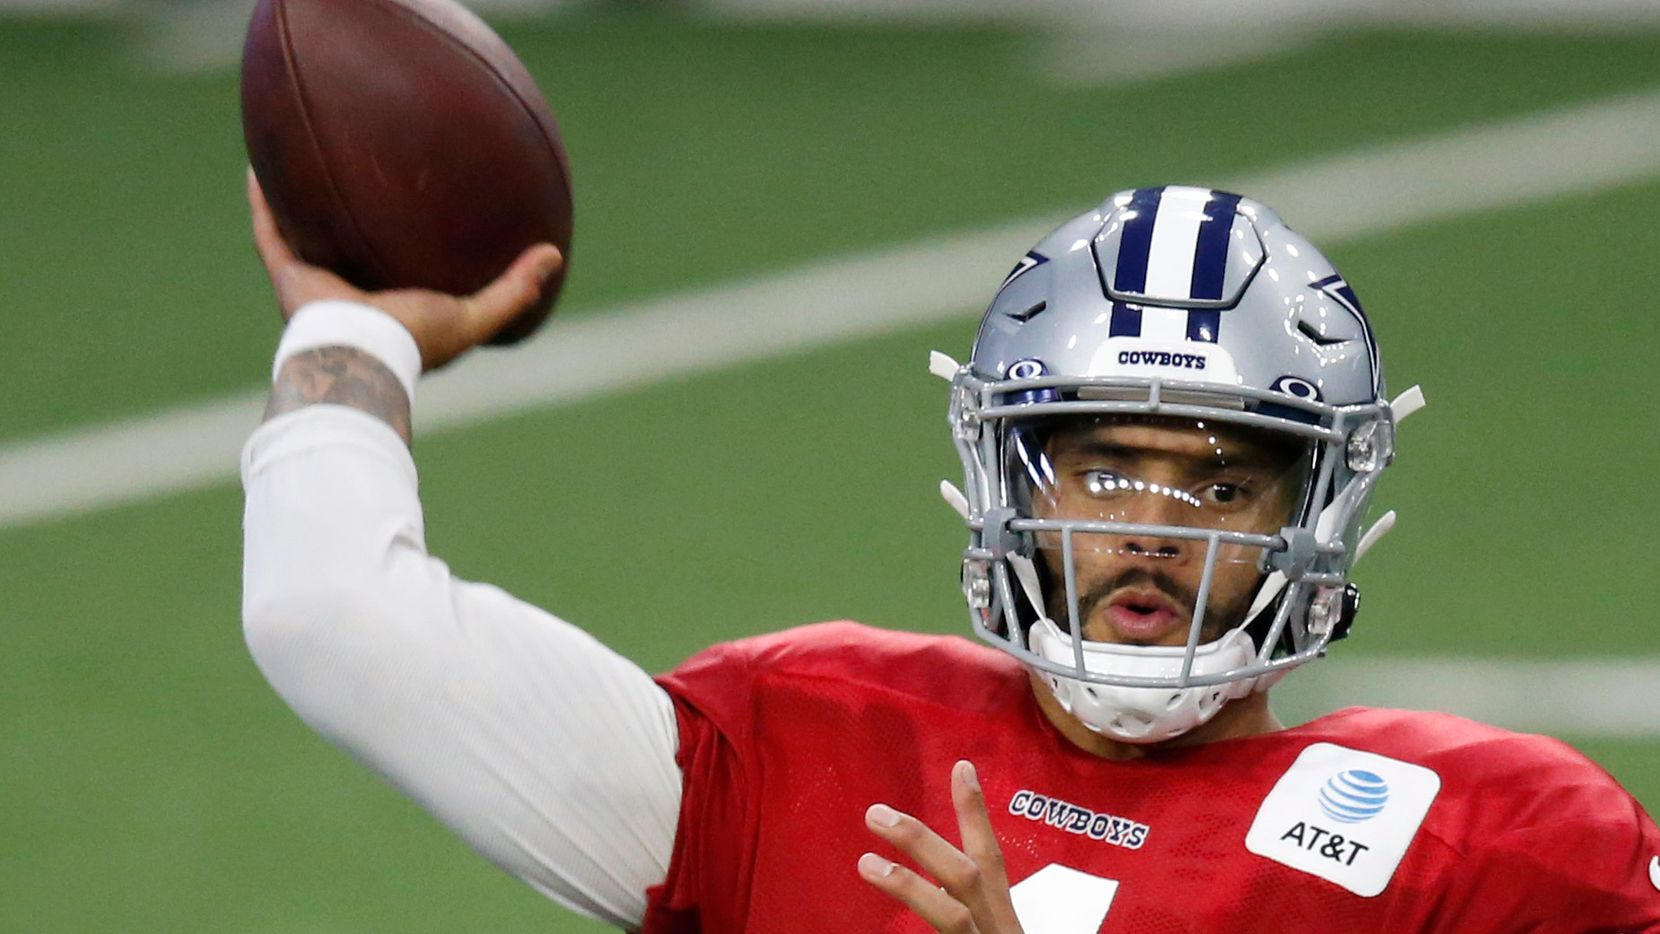 Dallas Cowboys quarterback Dak Prescott (4) attempts a pass in practice during training camp at the Dallas Cowboys headquarters at The Star in Frisco, Texas on Monday, August 31, 2020.